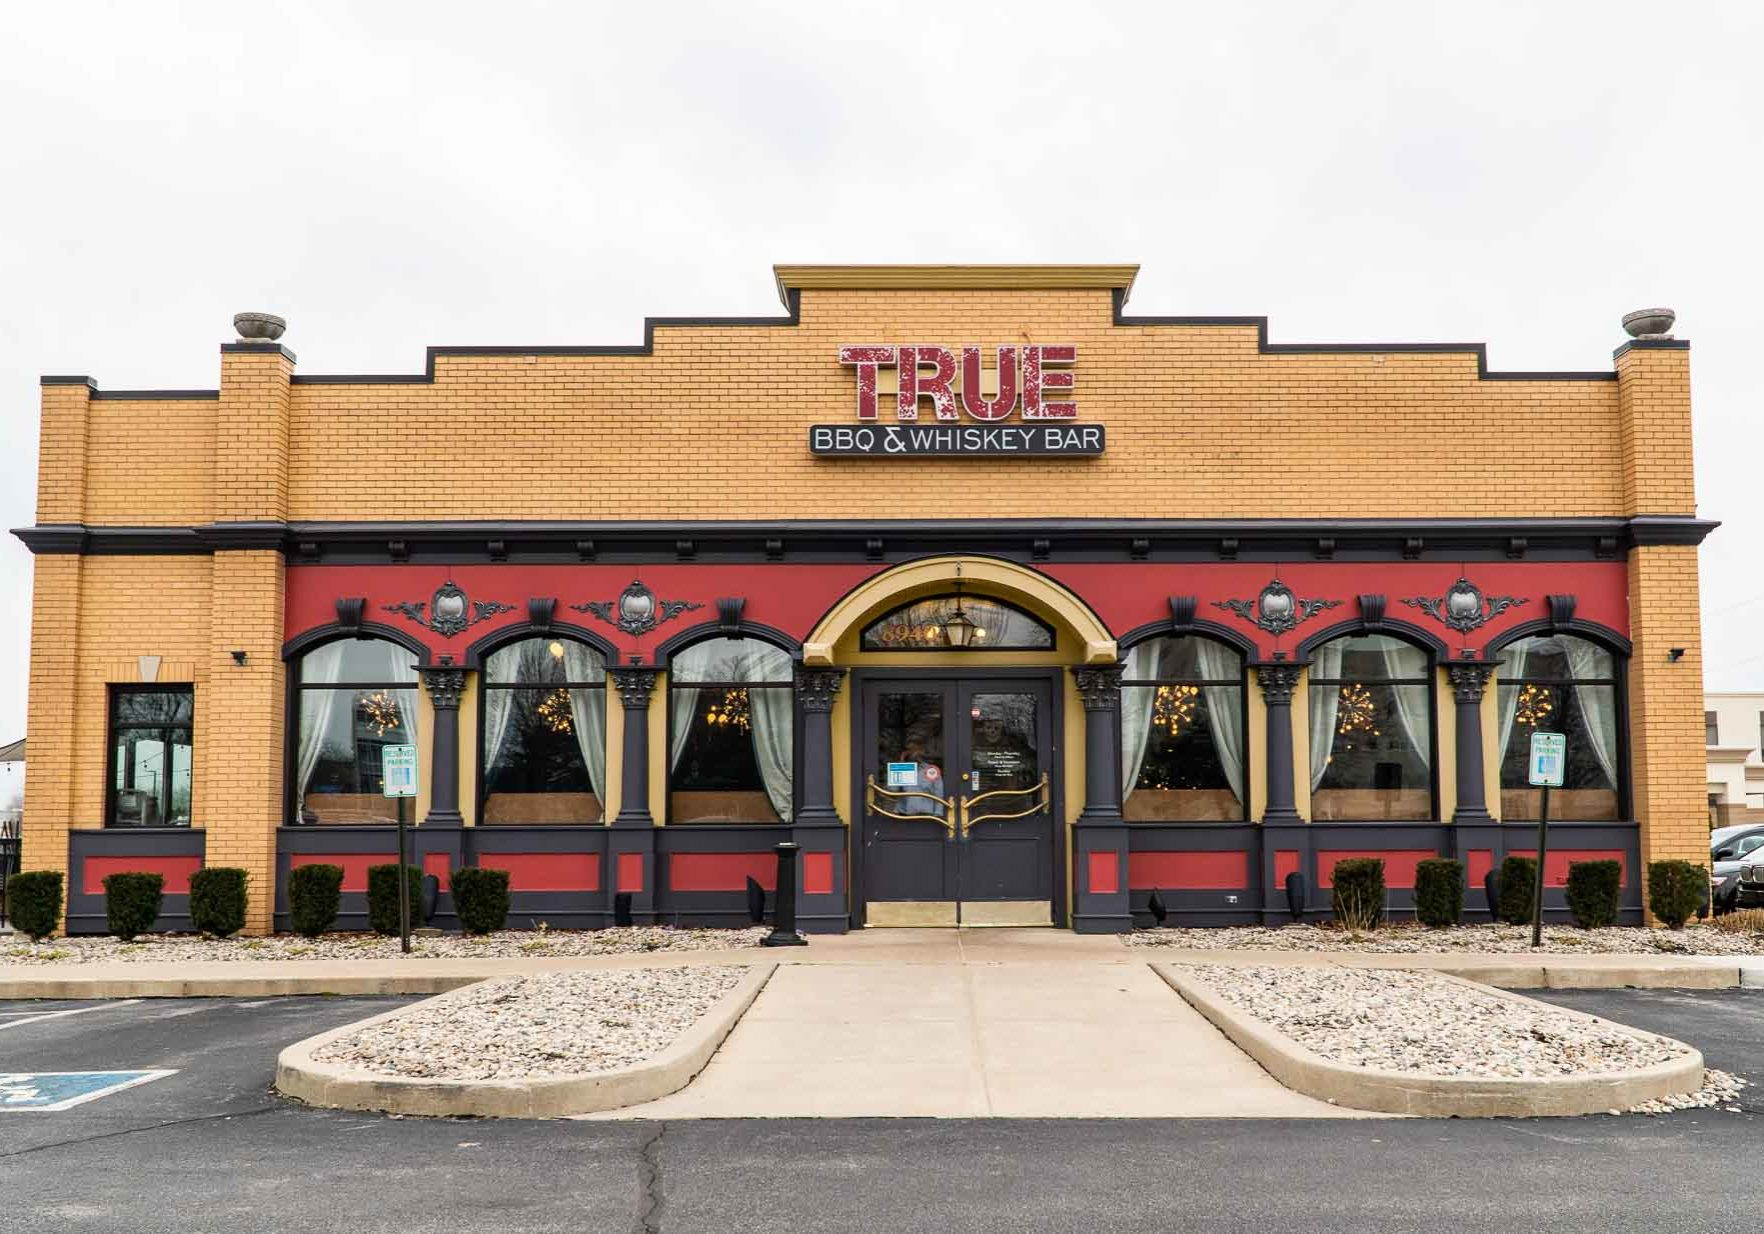 True BBQ and Whiskey Bar